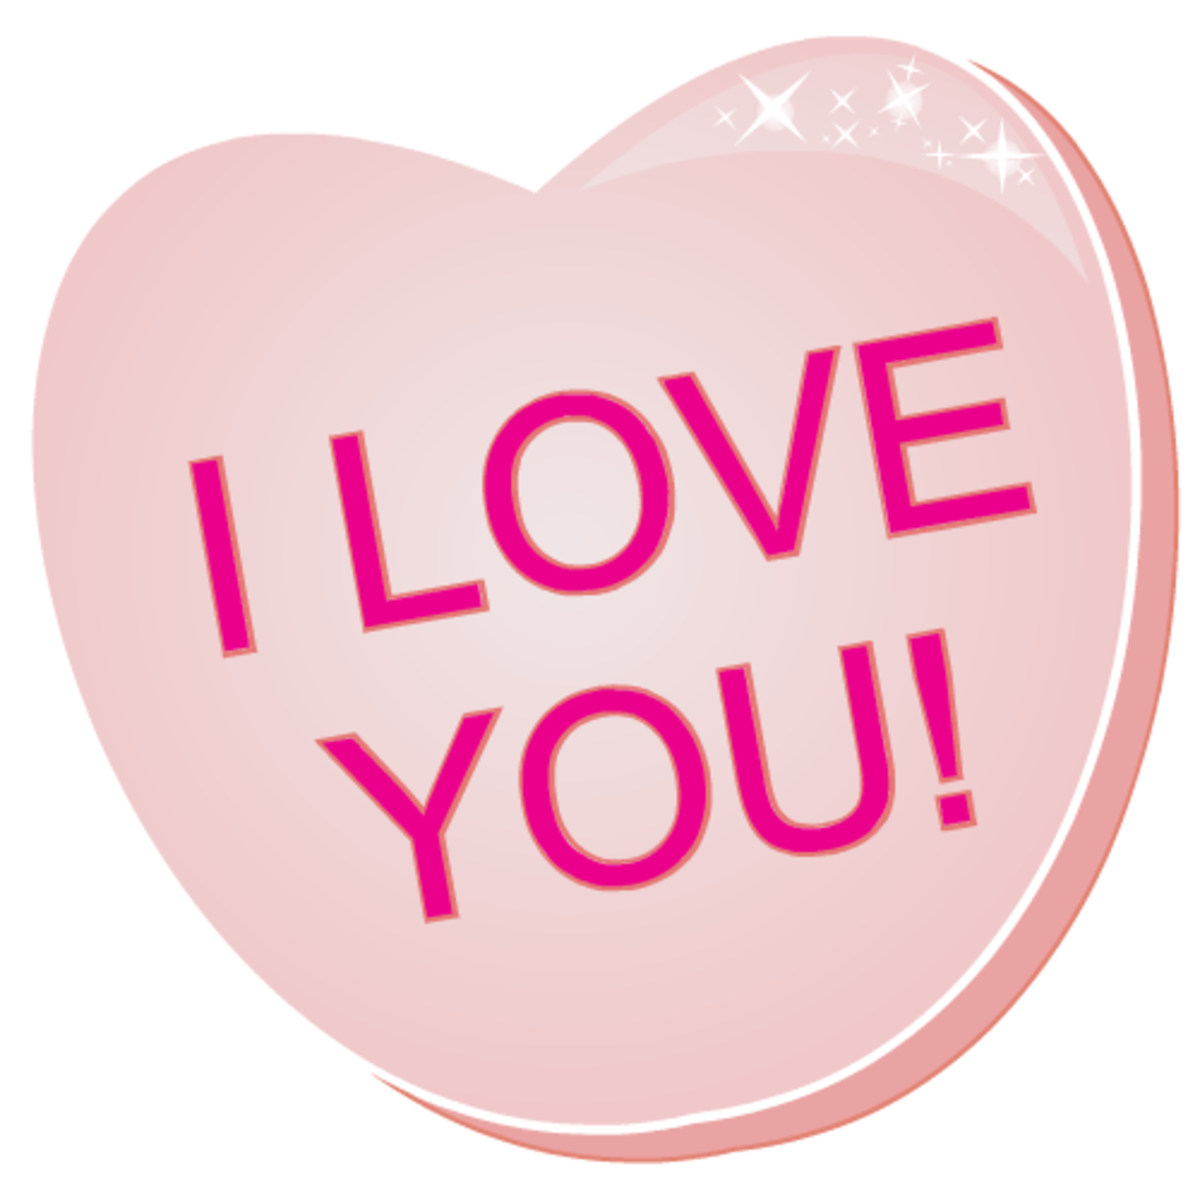 Free valentines clip art: I Love You! pink candy heart